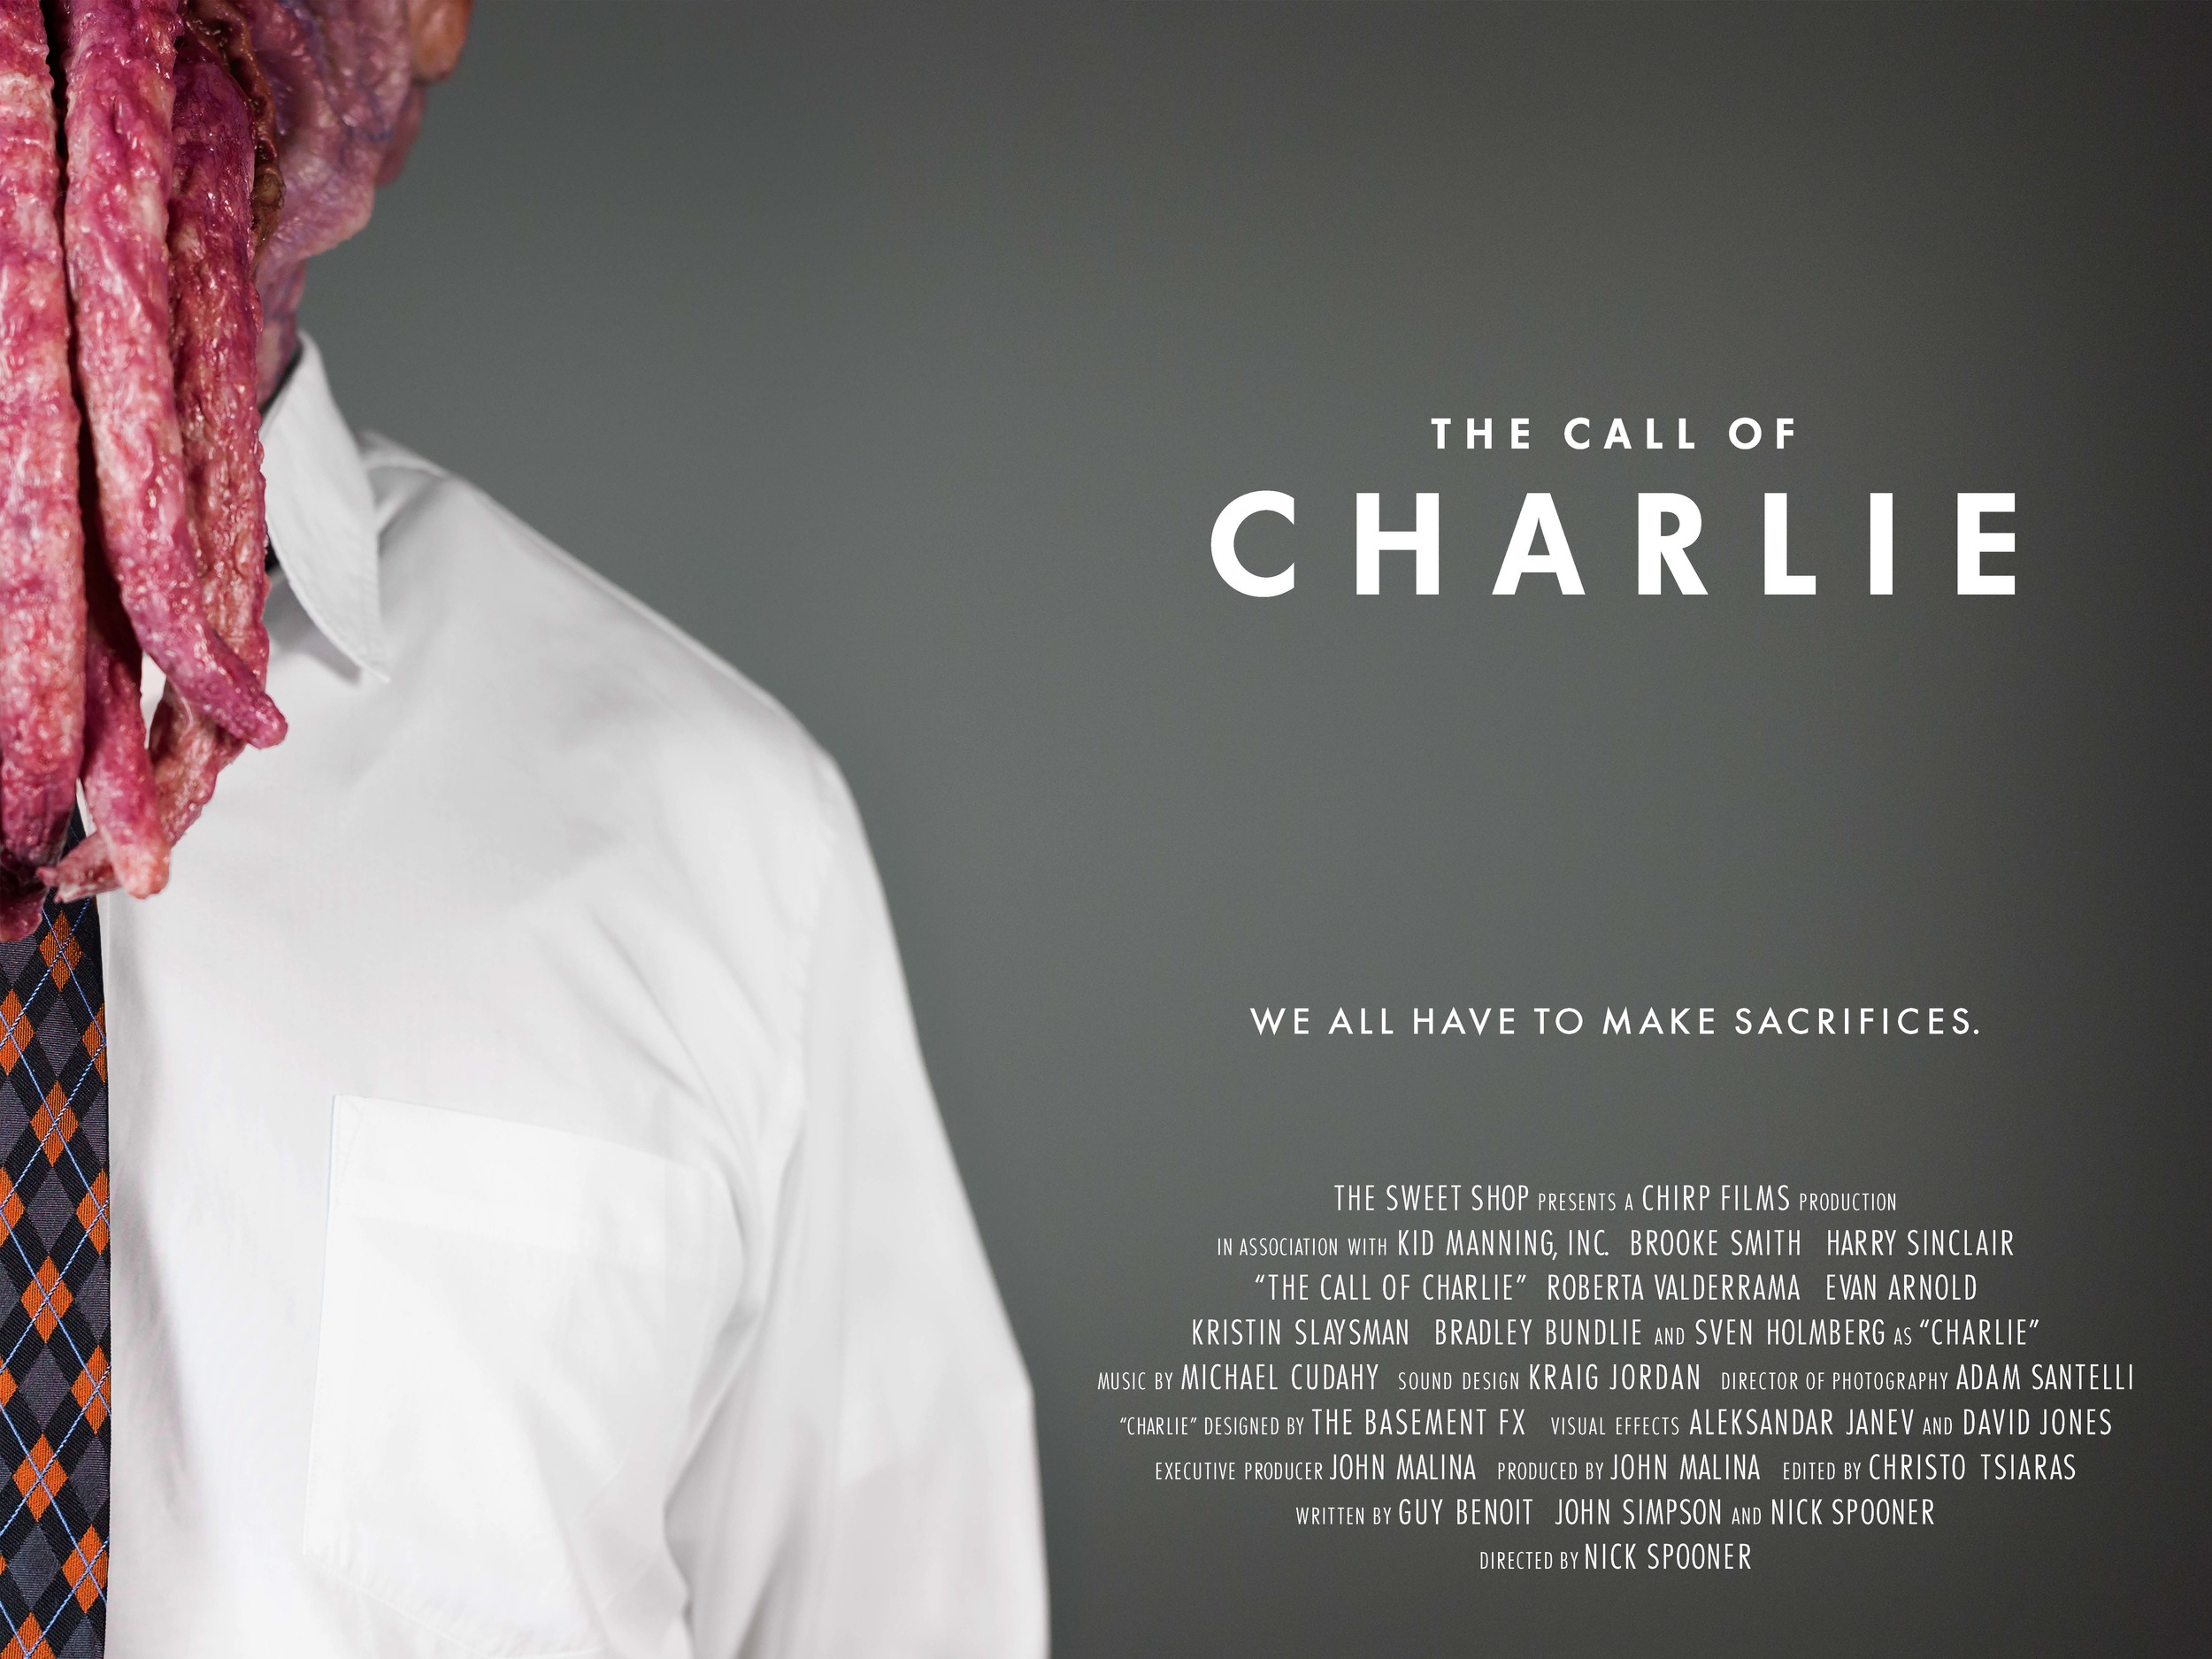 The Call of Charlie-Poster.jpg